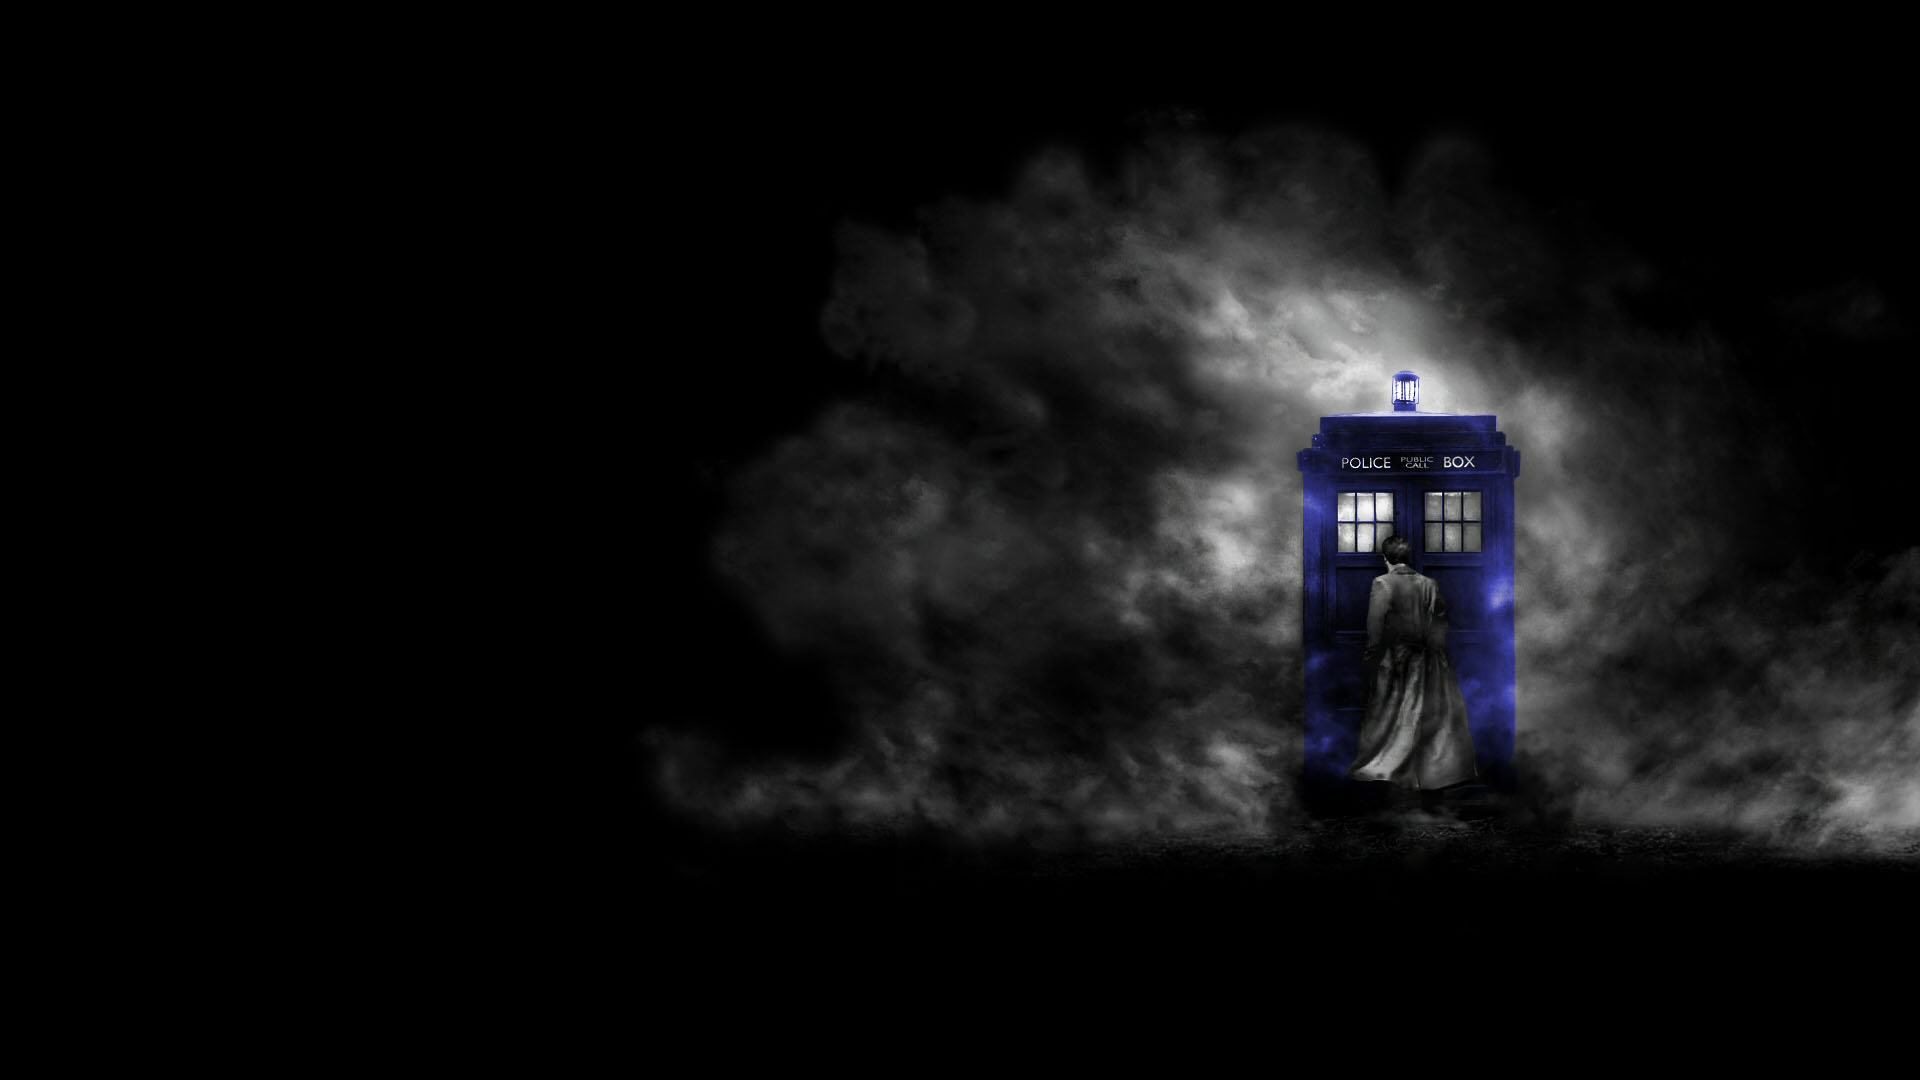 Doctor Who wallpaper 13 1920x1080